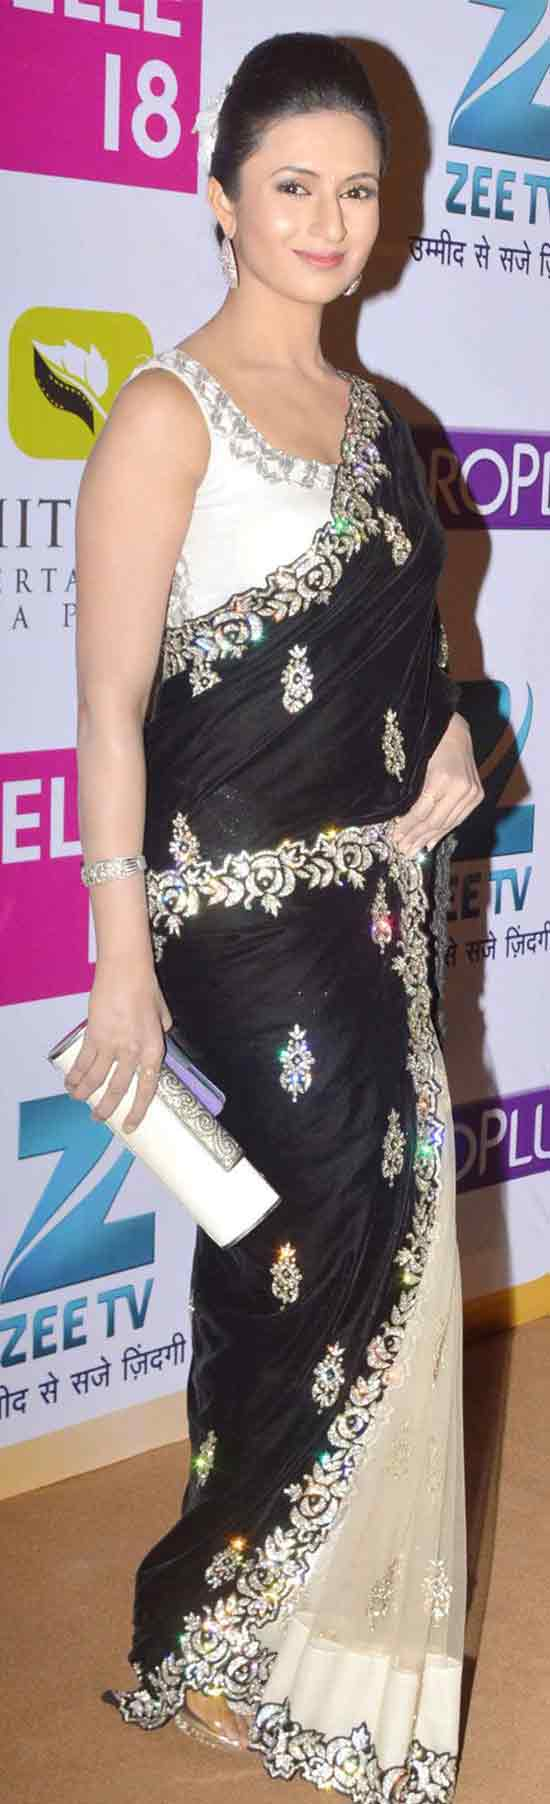 Divyanka-Tripathi-In-Off-White-And-Black-Net-Saree